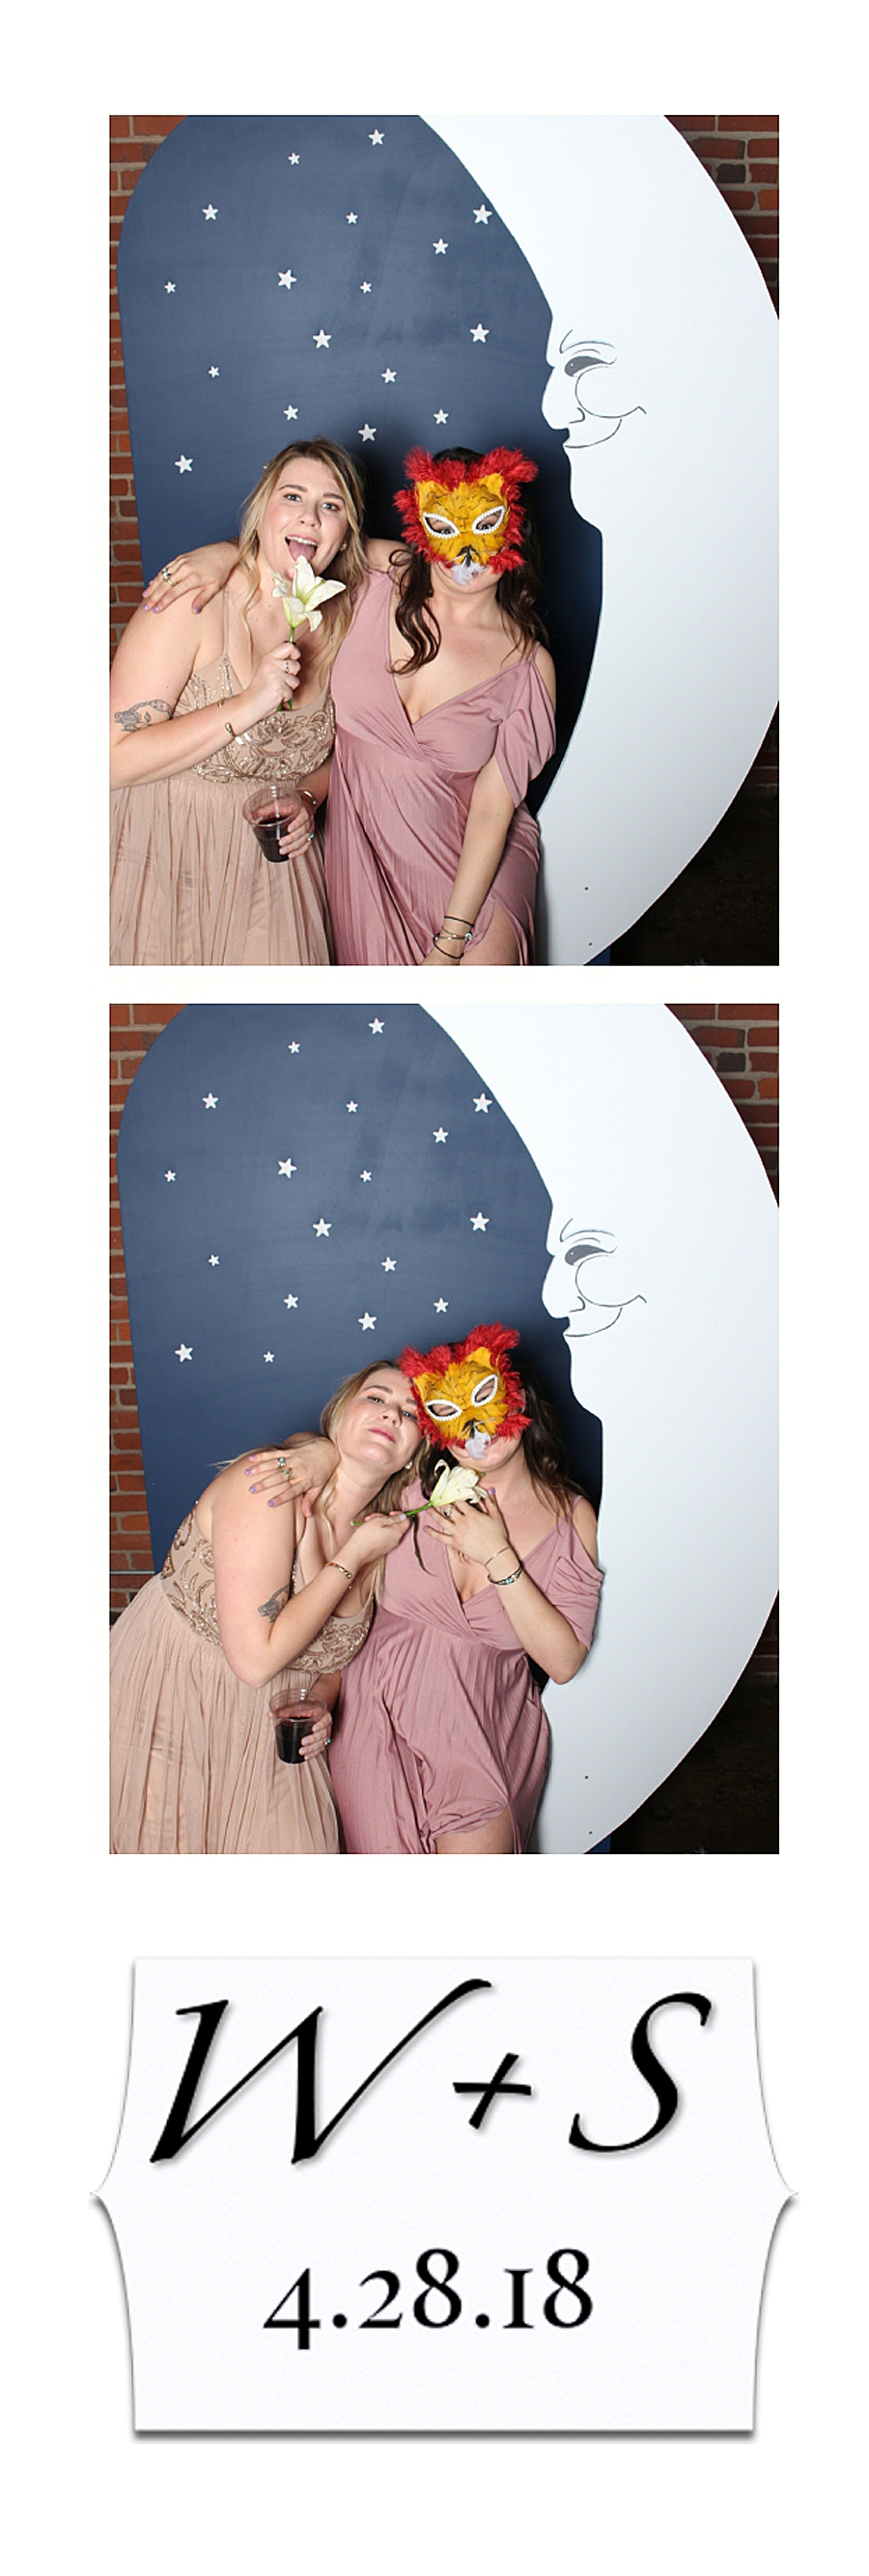 Knoxville Photo Booth_1746.jpg